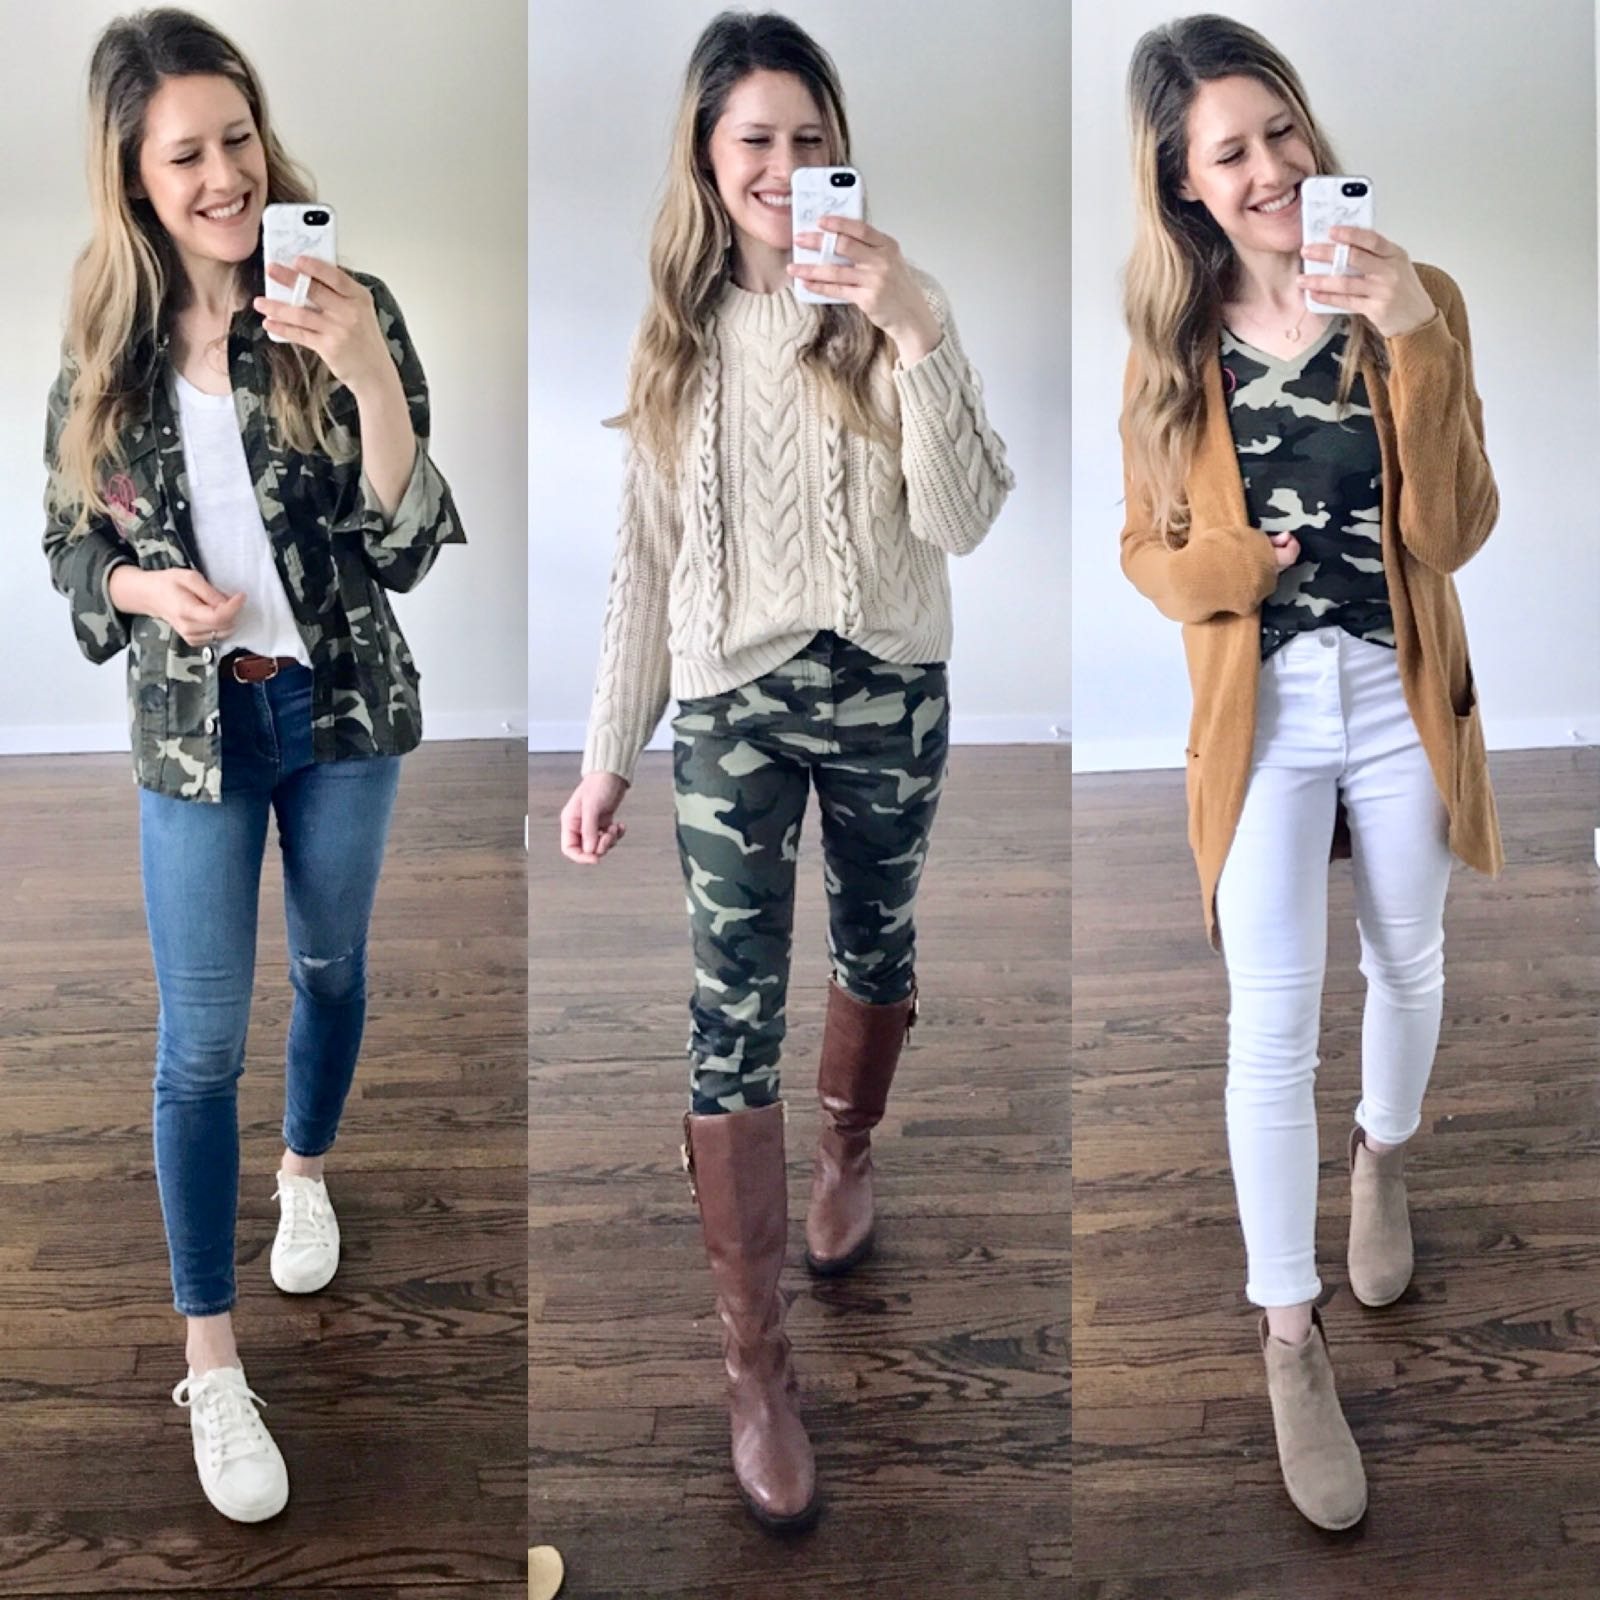 #ad 3 ways to wear camo! All at Walmart